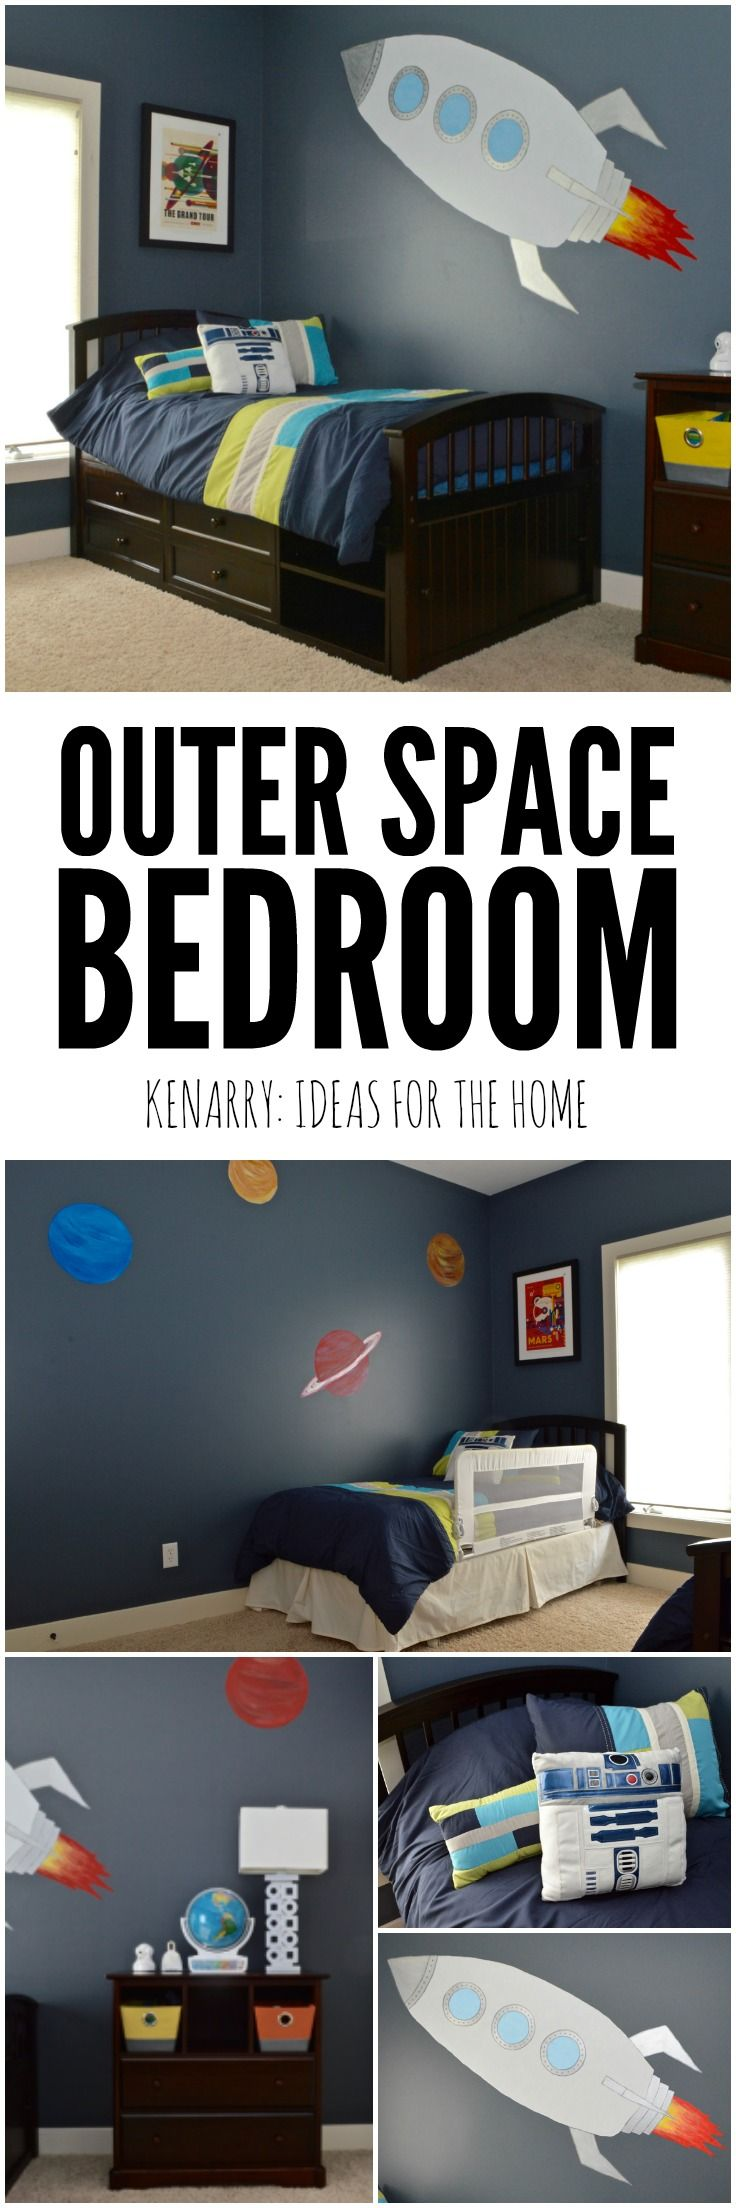 25 best ideas about outer space bedroom on pinterest for Outer space decor